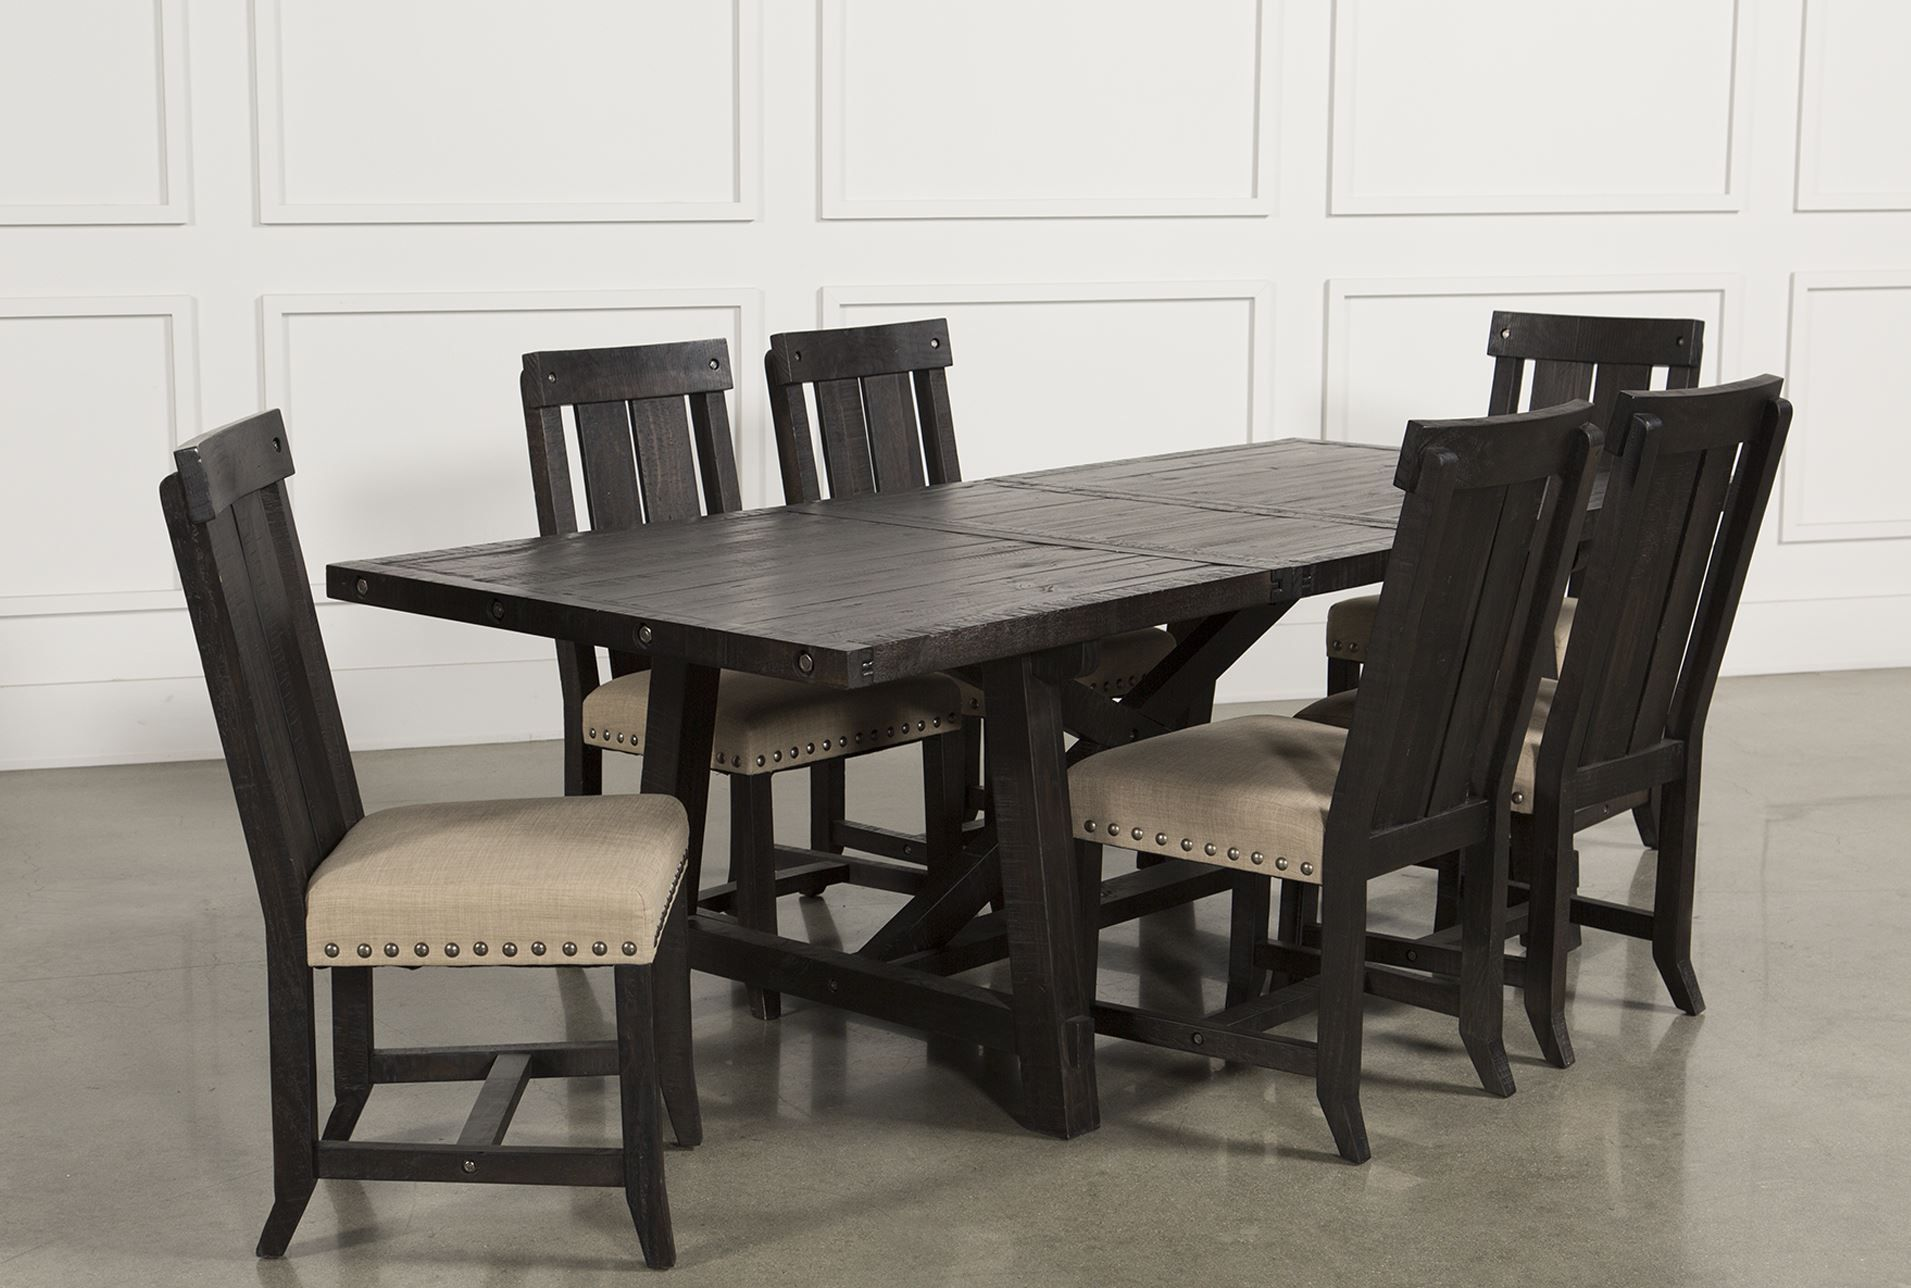 e8bcc00b4 Jaxon 7 Piece Rectangle Dining Set W Wood Chairs - Living Spaces